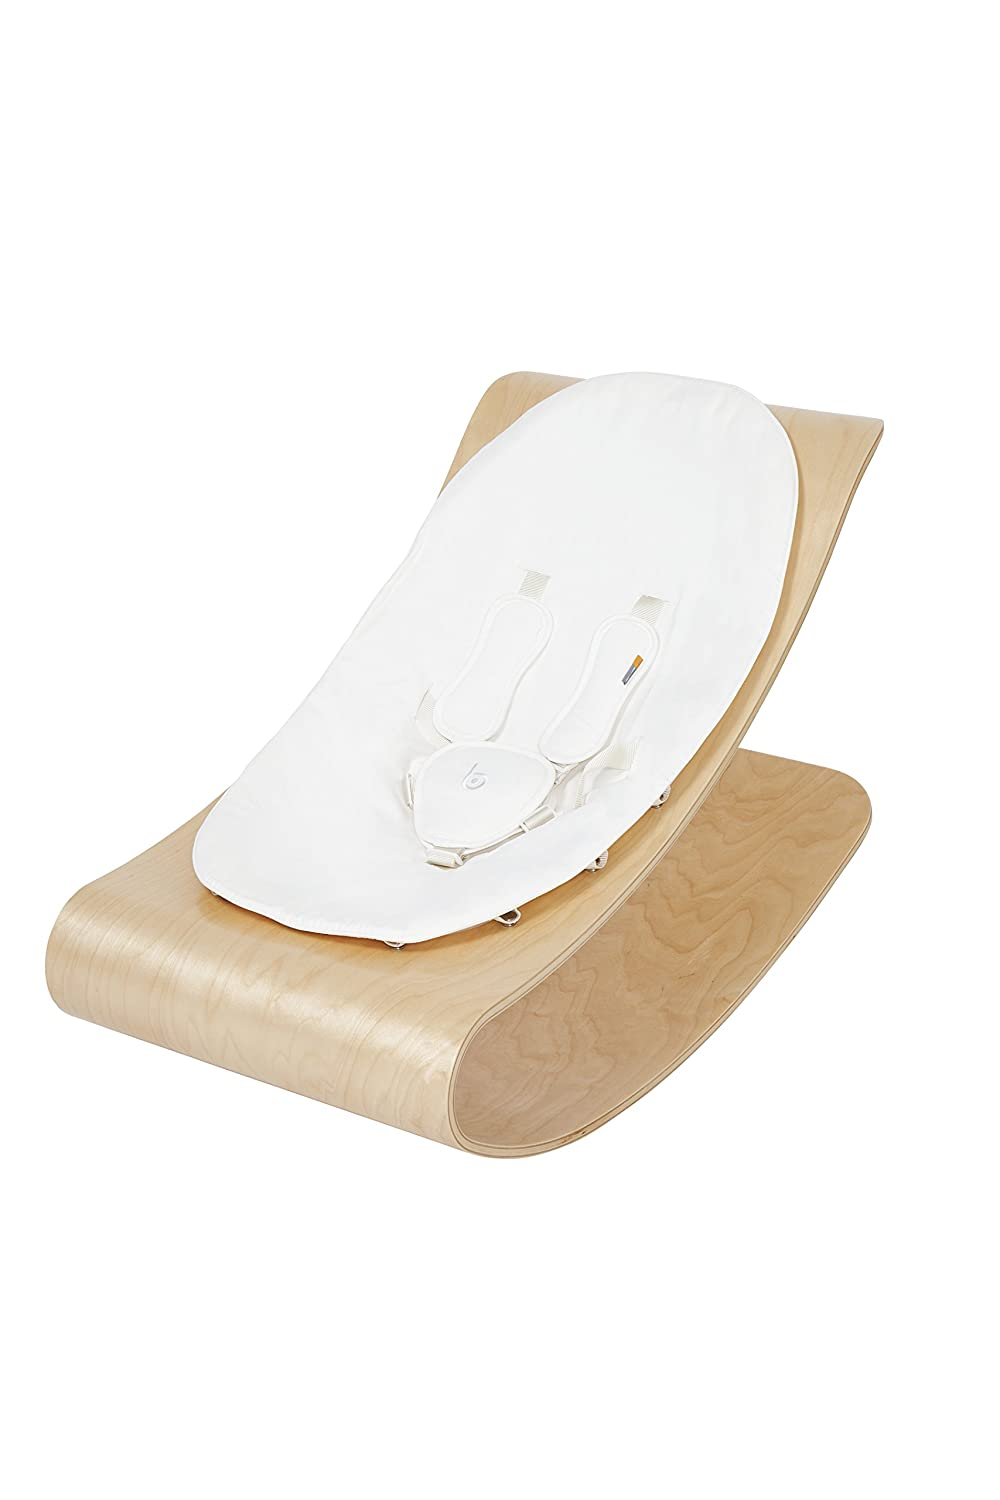 Bloom Coco Stylewood Organic Lounger